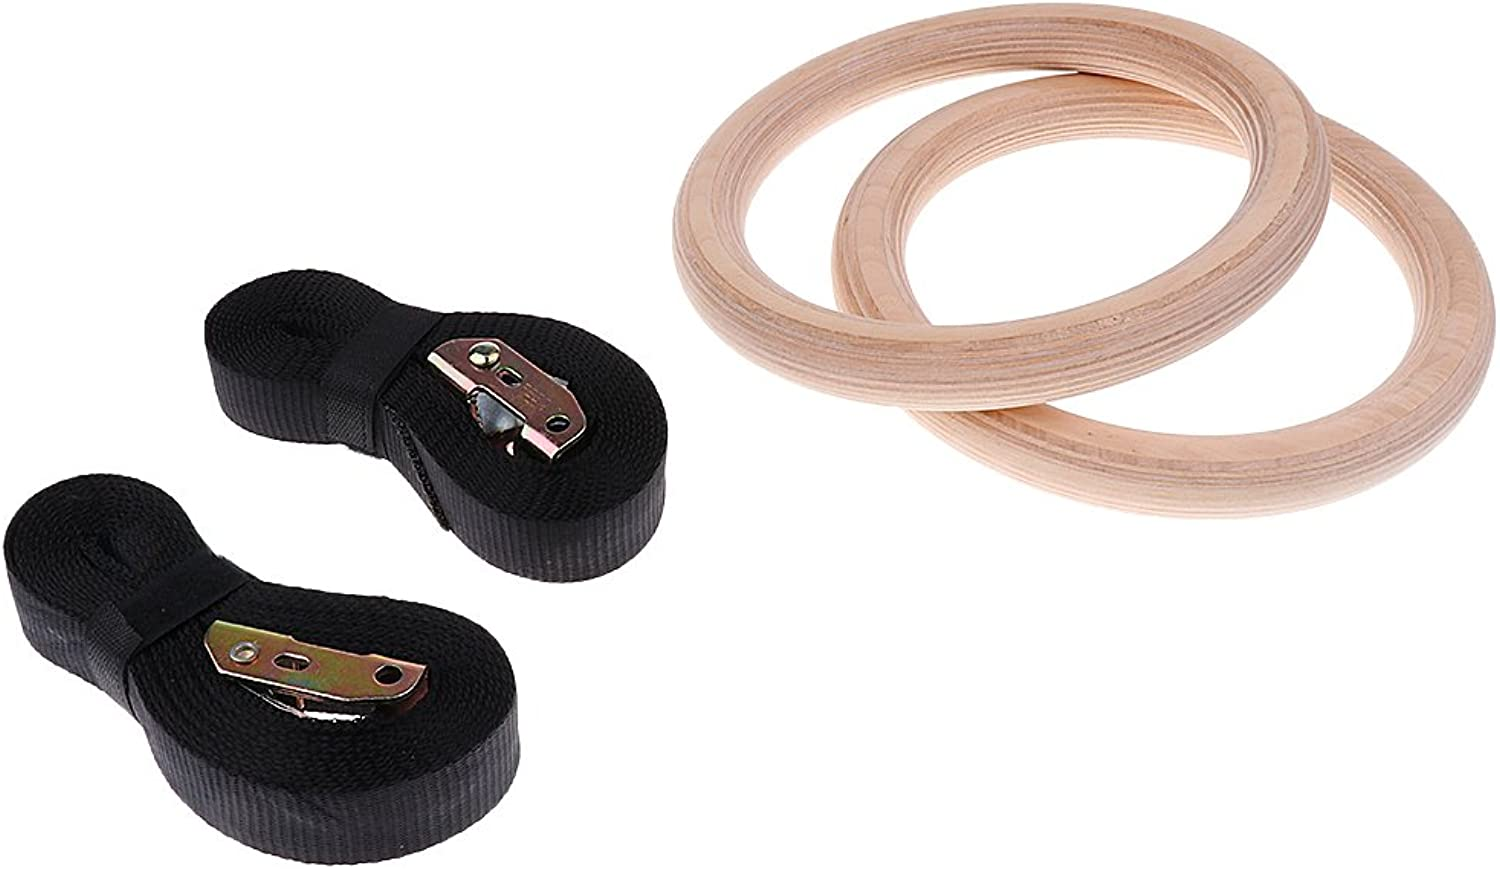 MagiDeal Wood Gymnastic Rings for Training Workouts, Gymnastics and Conditioning